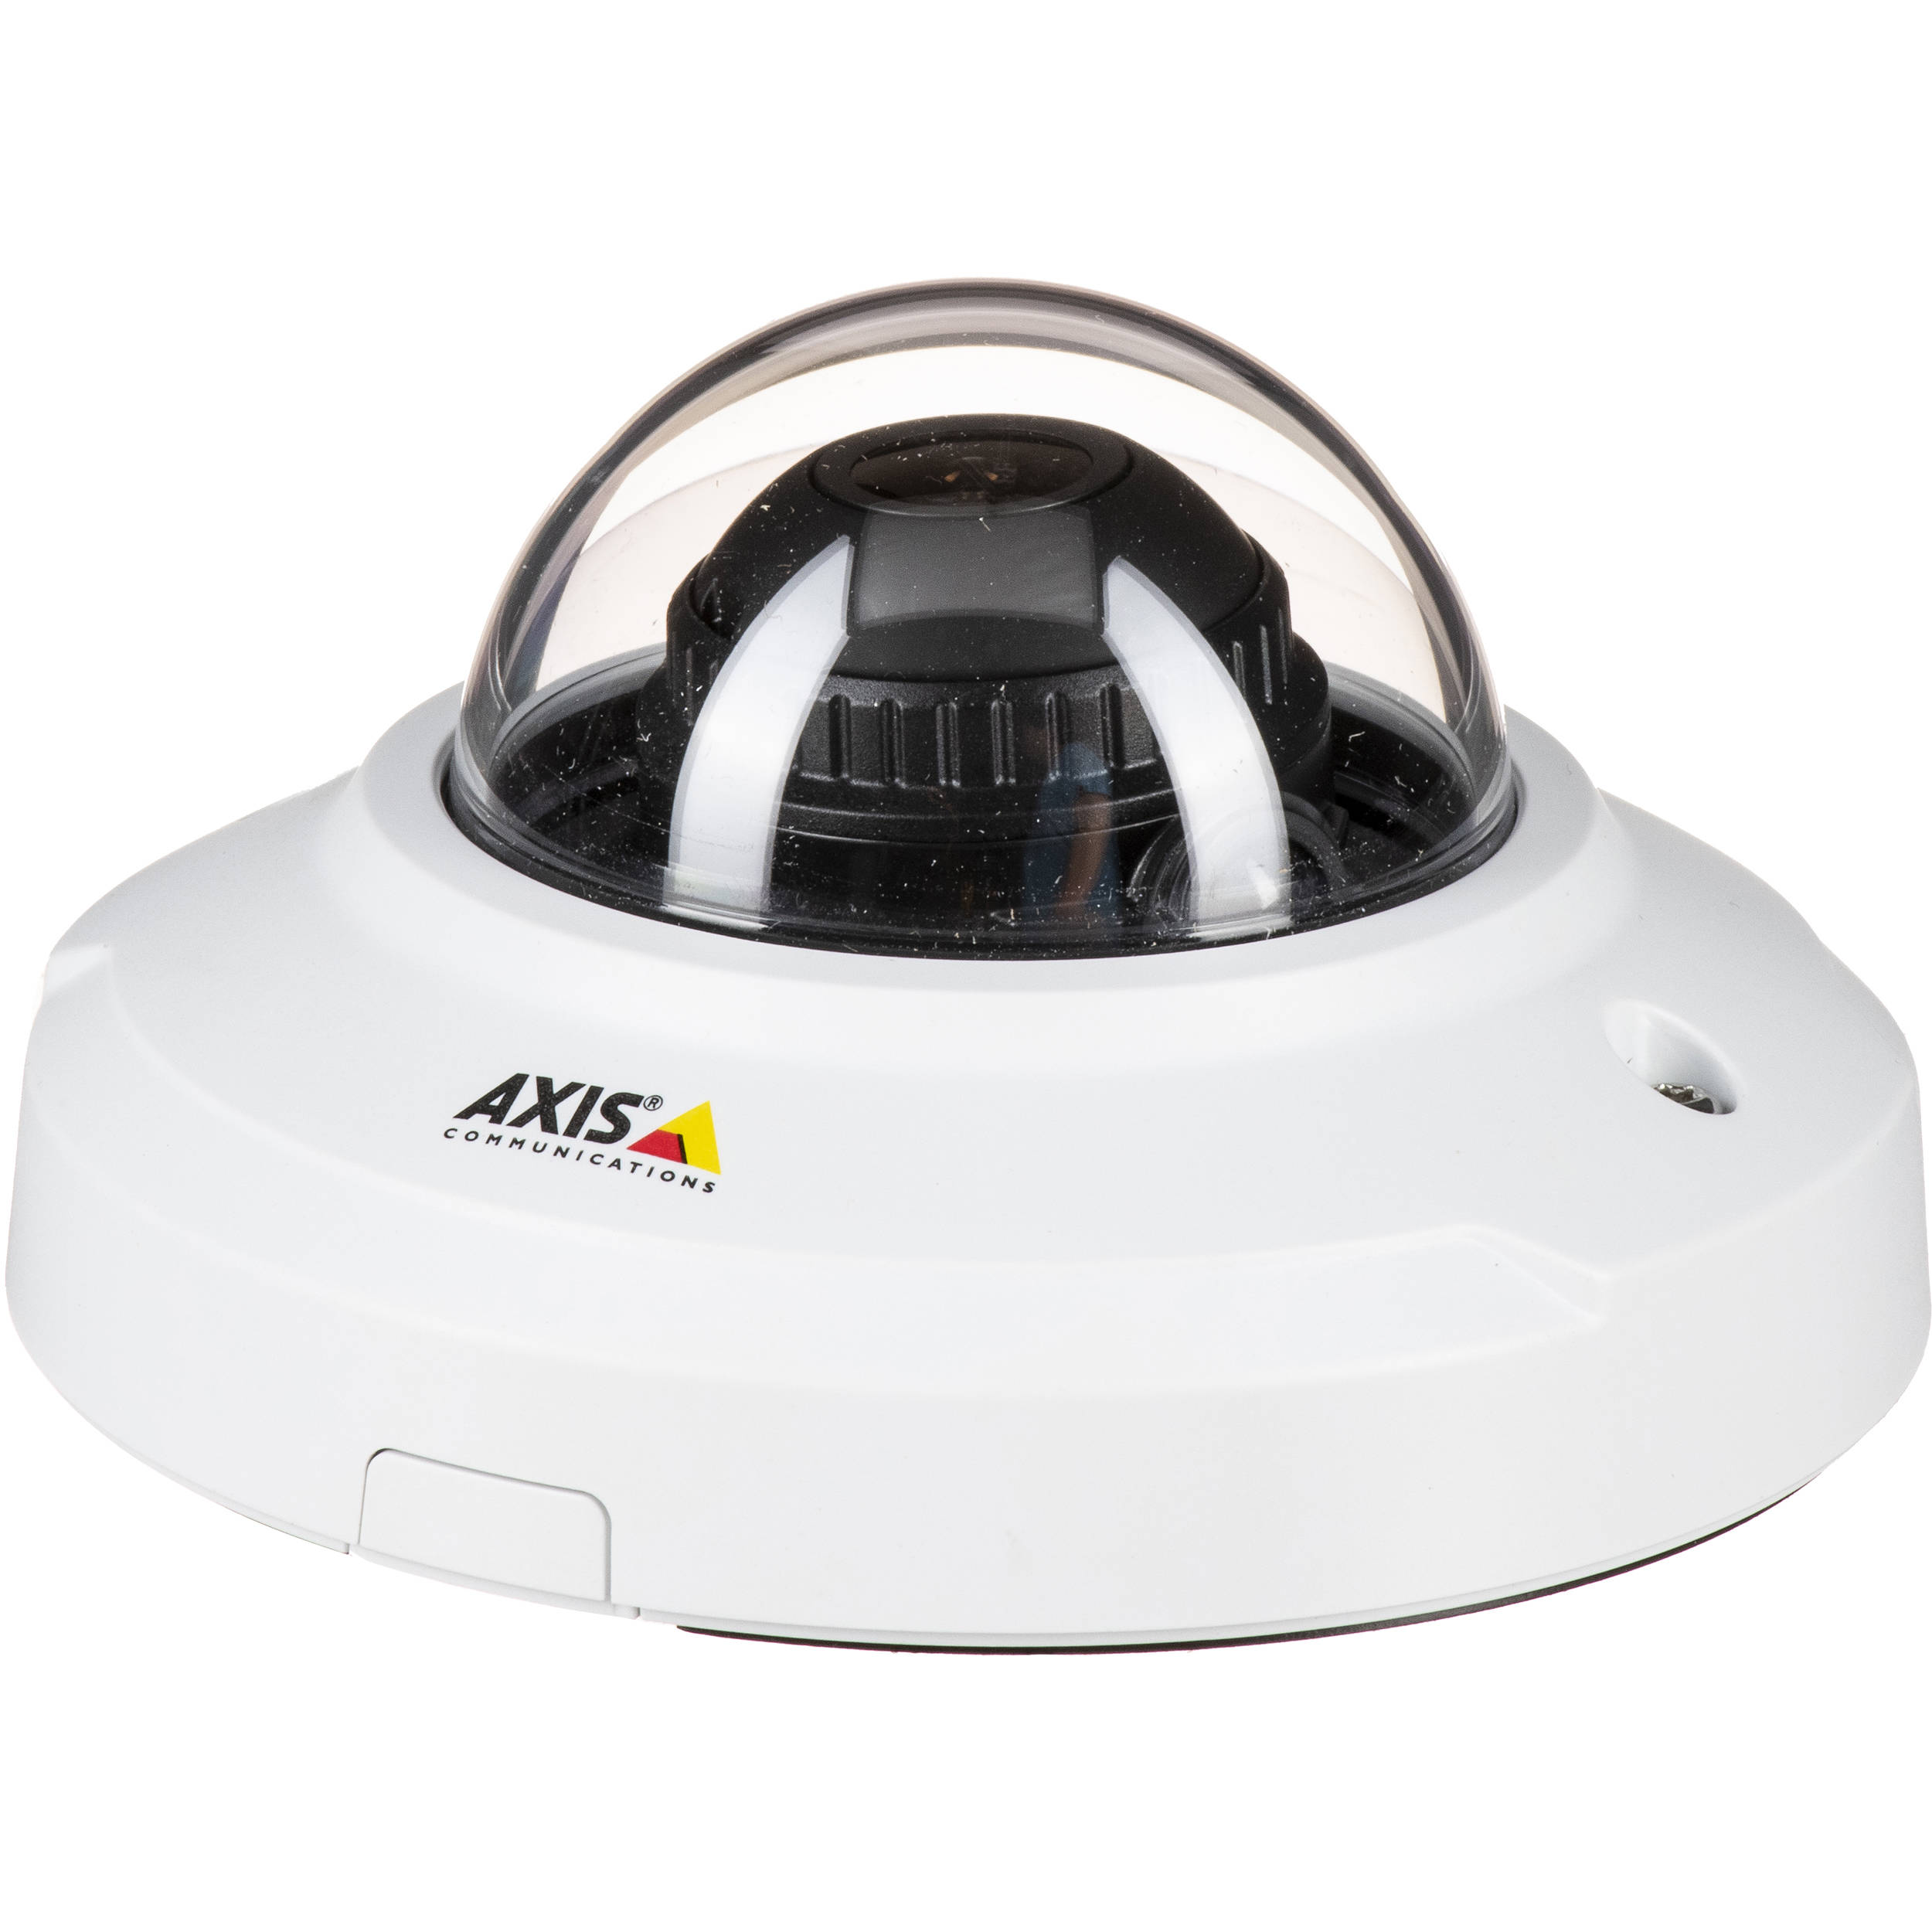 Axis Communications M3045 Wv 2mp Wi Fi Dome Camera